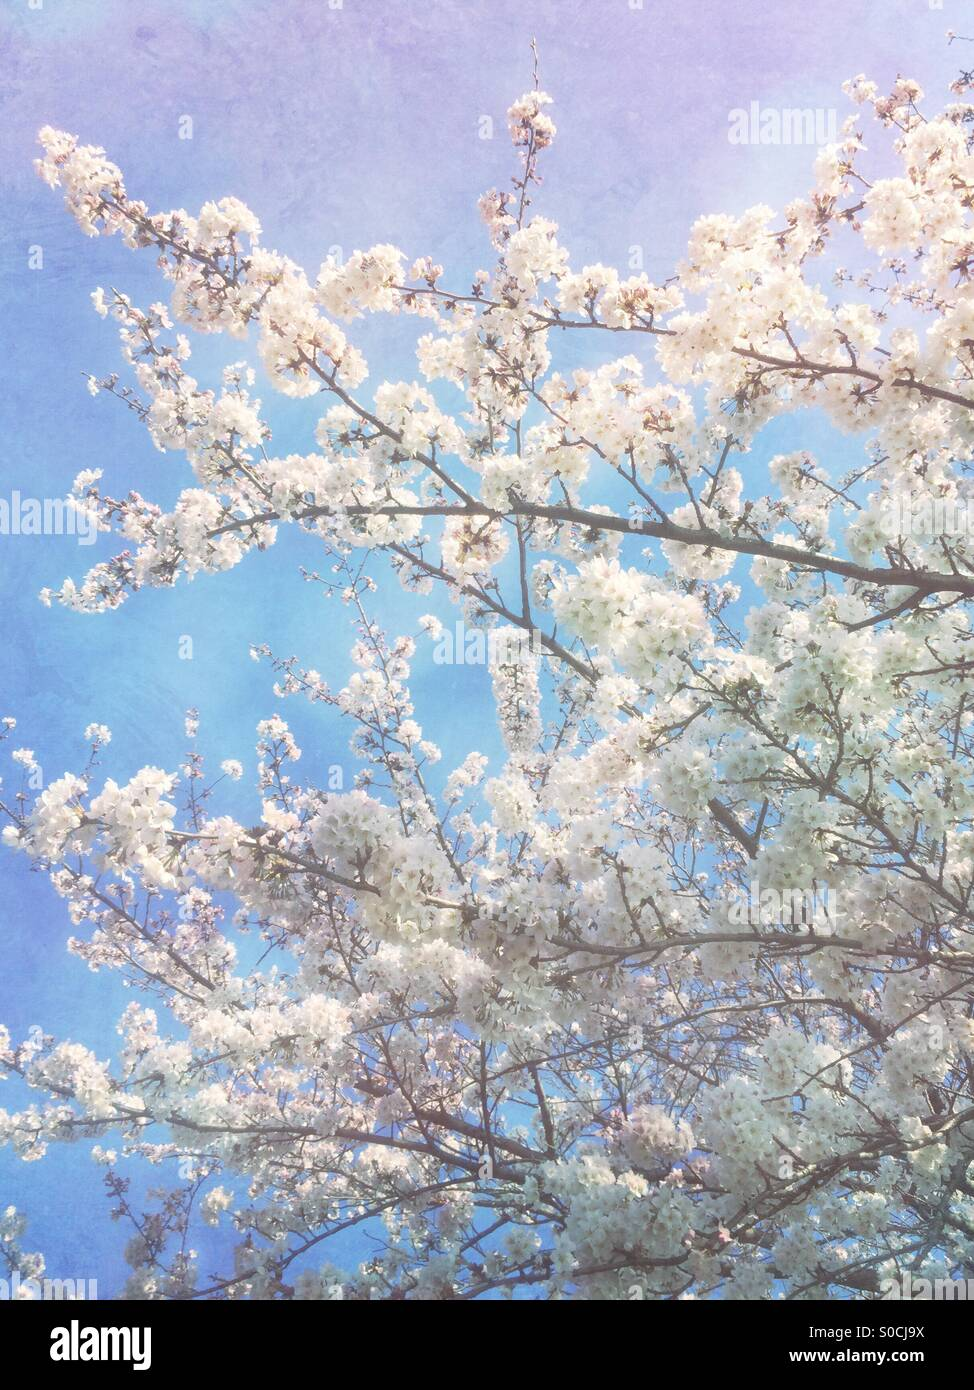 Beautiful white sakura or cherry blossoms in Spring, with soft blue sky and vintage paper texture overlay with hints - Stock Image